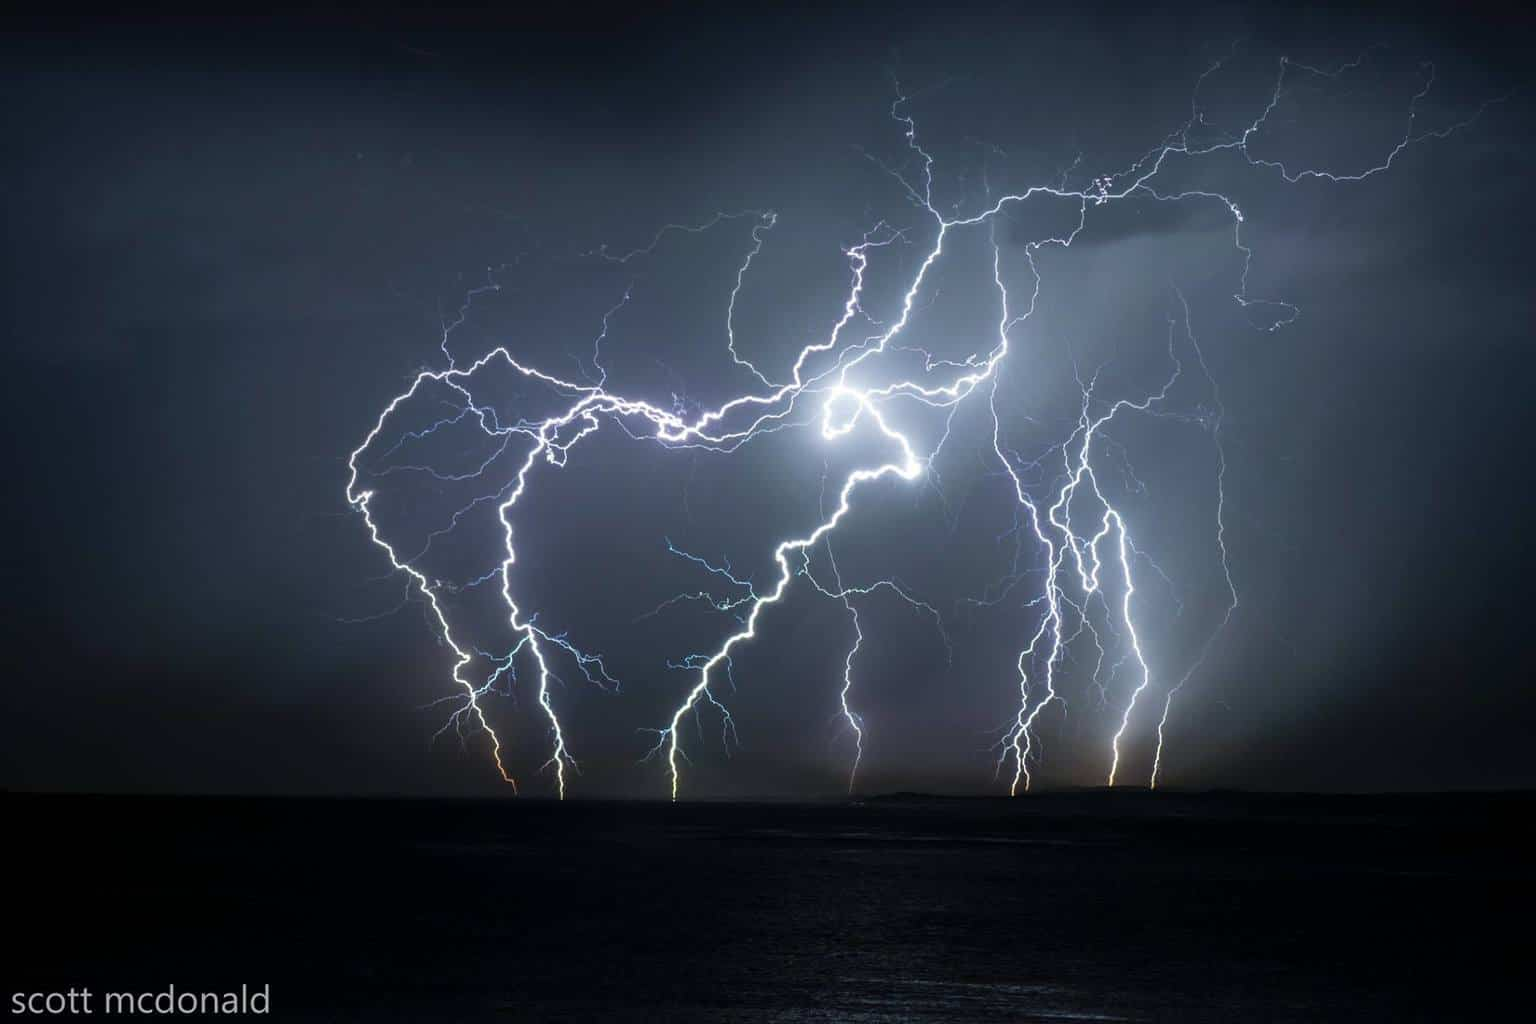 90secs worth of lightning from the best show ive witnessed for quite a while. View in full screen